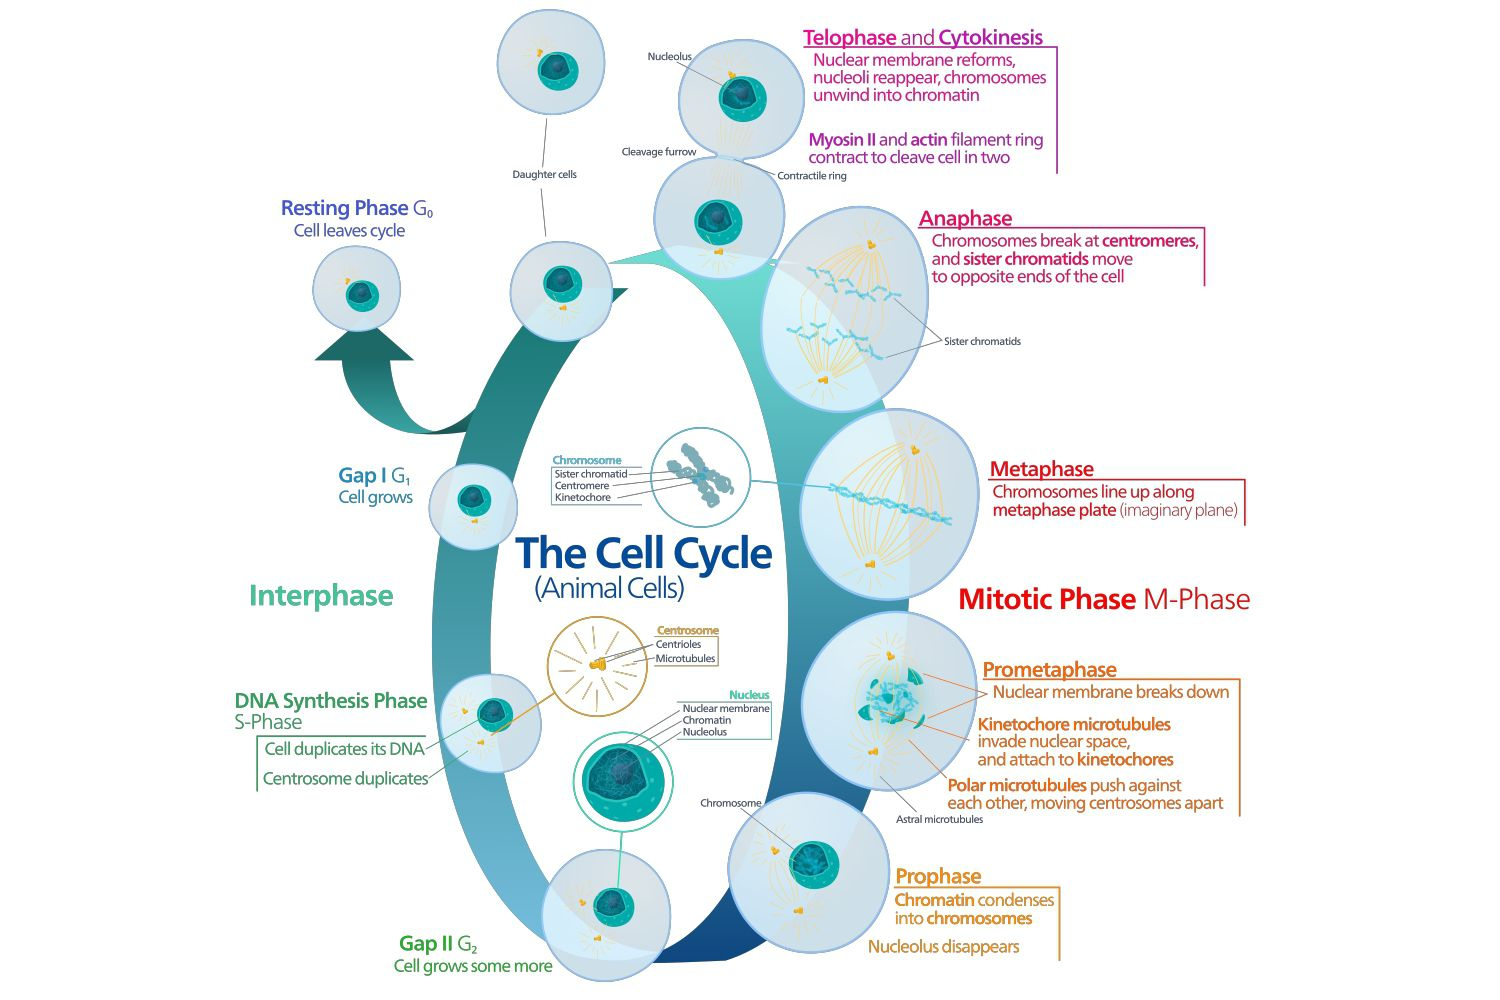 The Cell Cycle Of Growth And Replication